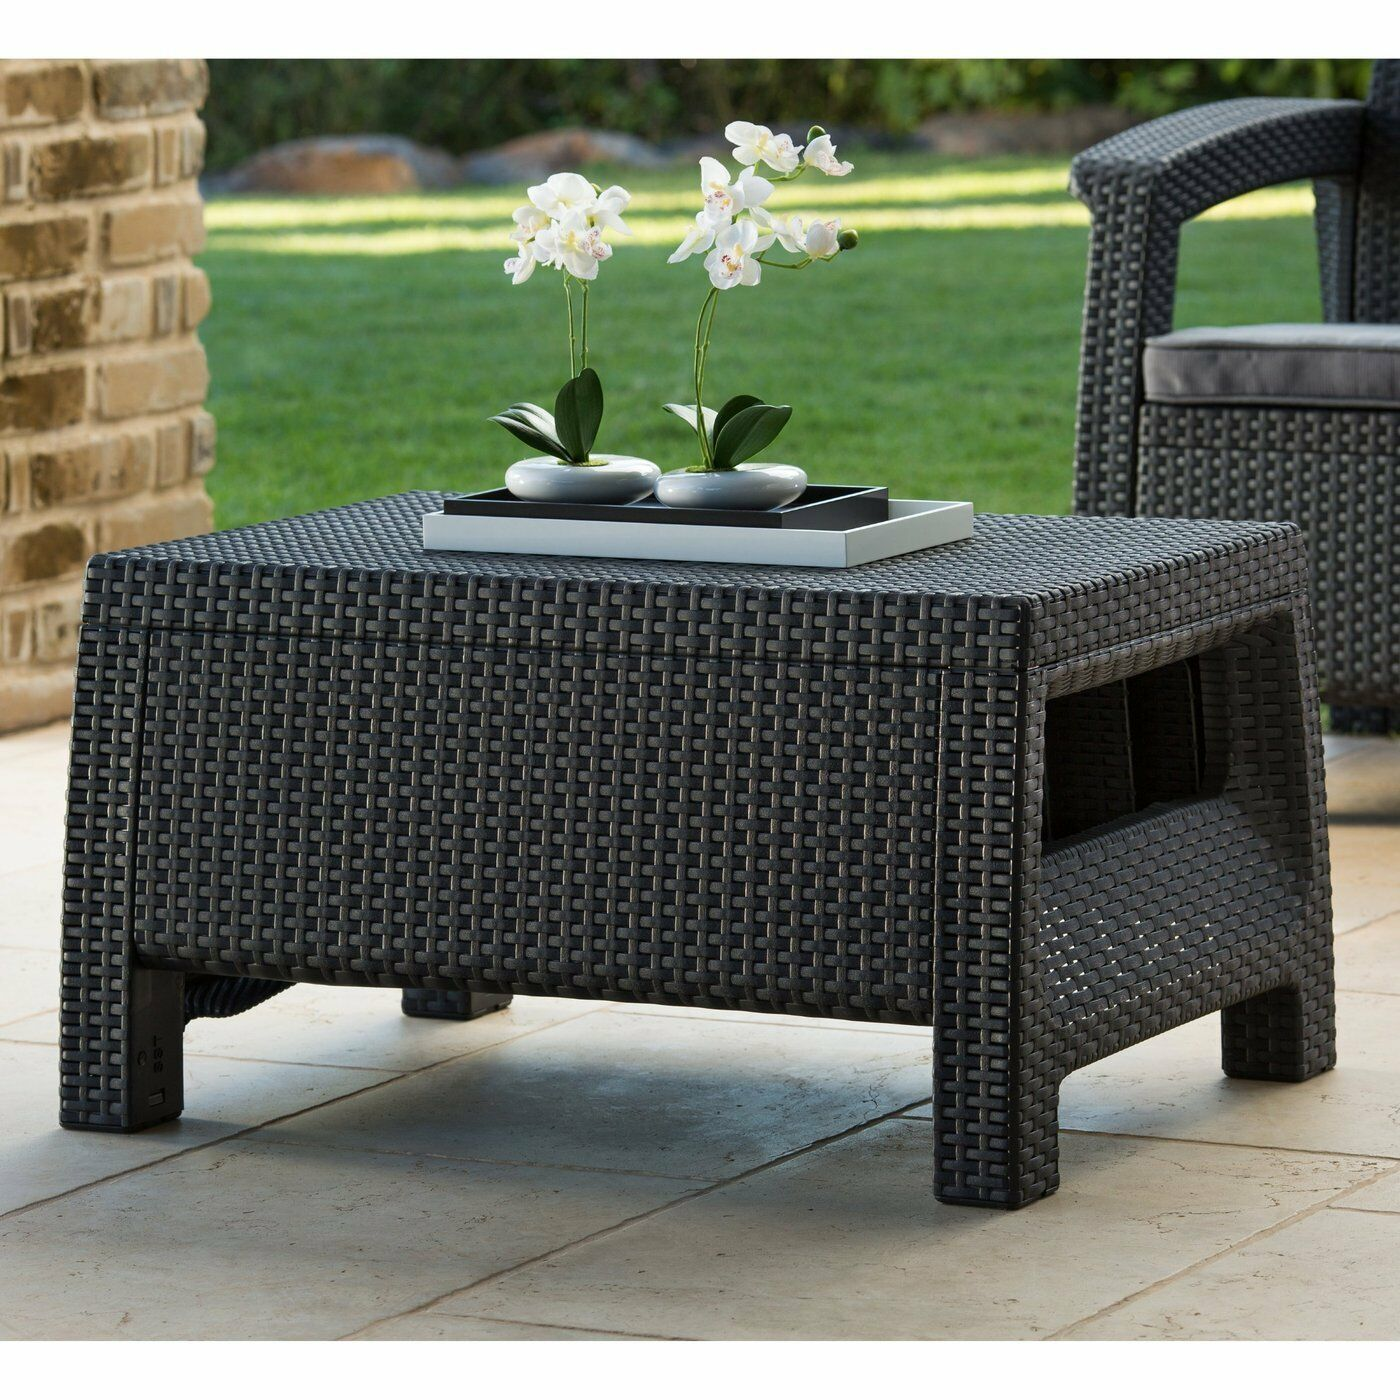 Wicker Coffee Table Outdoor Patio Rattan Side End Deck